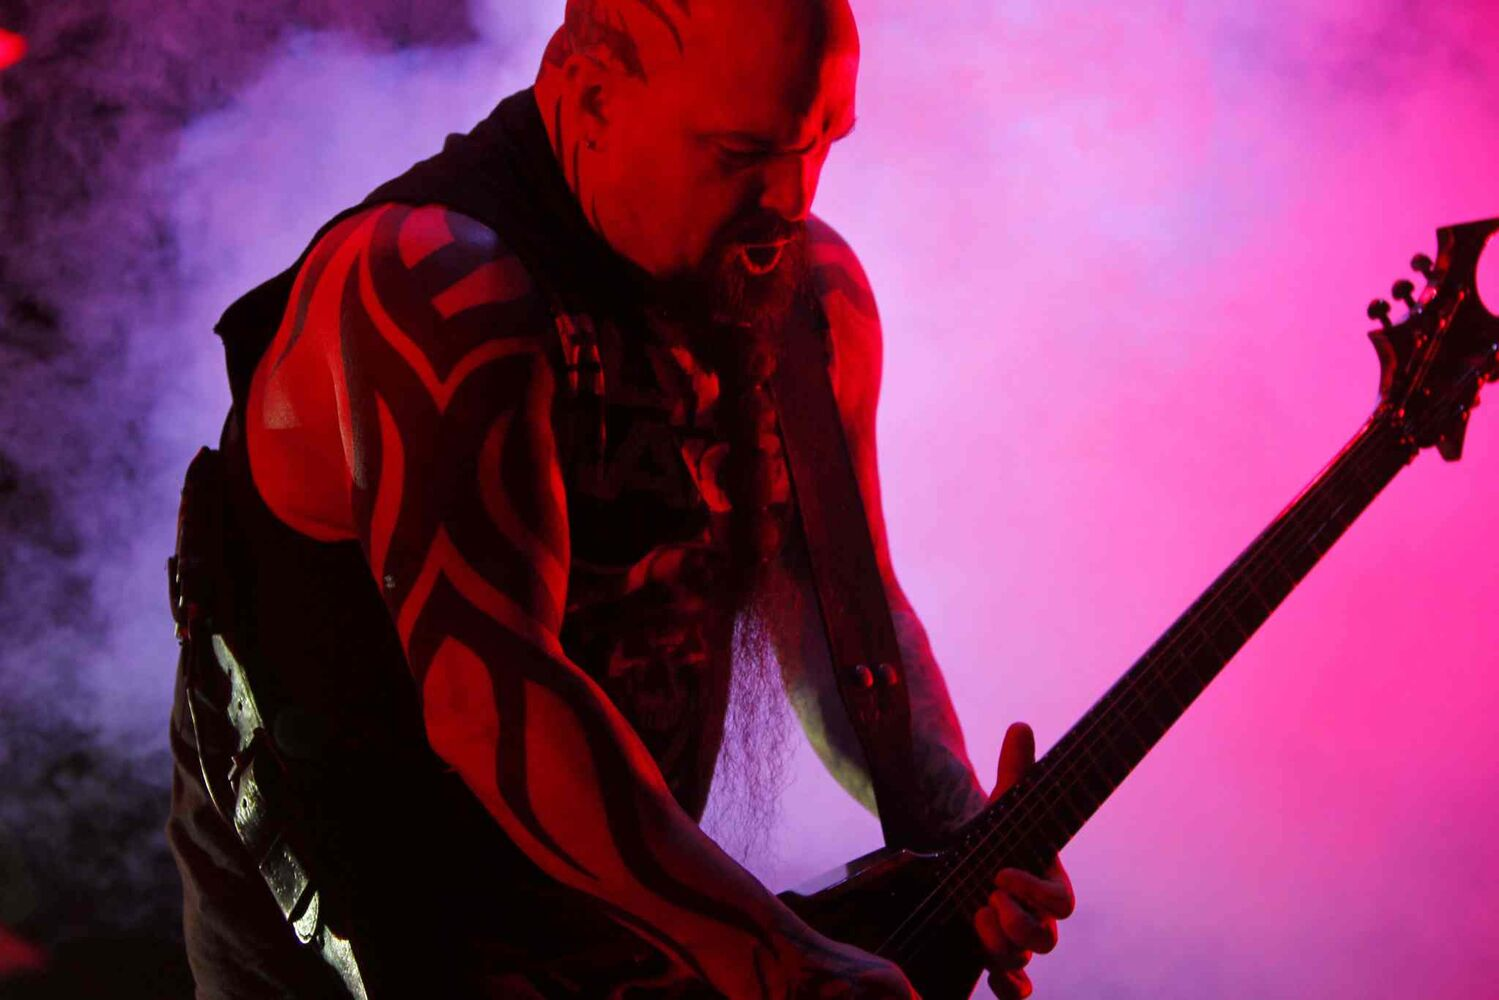 Guitarist Kerry King blasts out a guitar solo. (BORIS MINKEVICH / WINNIPEG FREE PRESS)